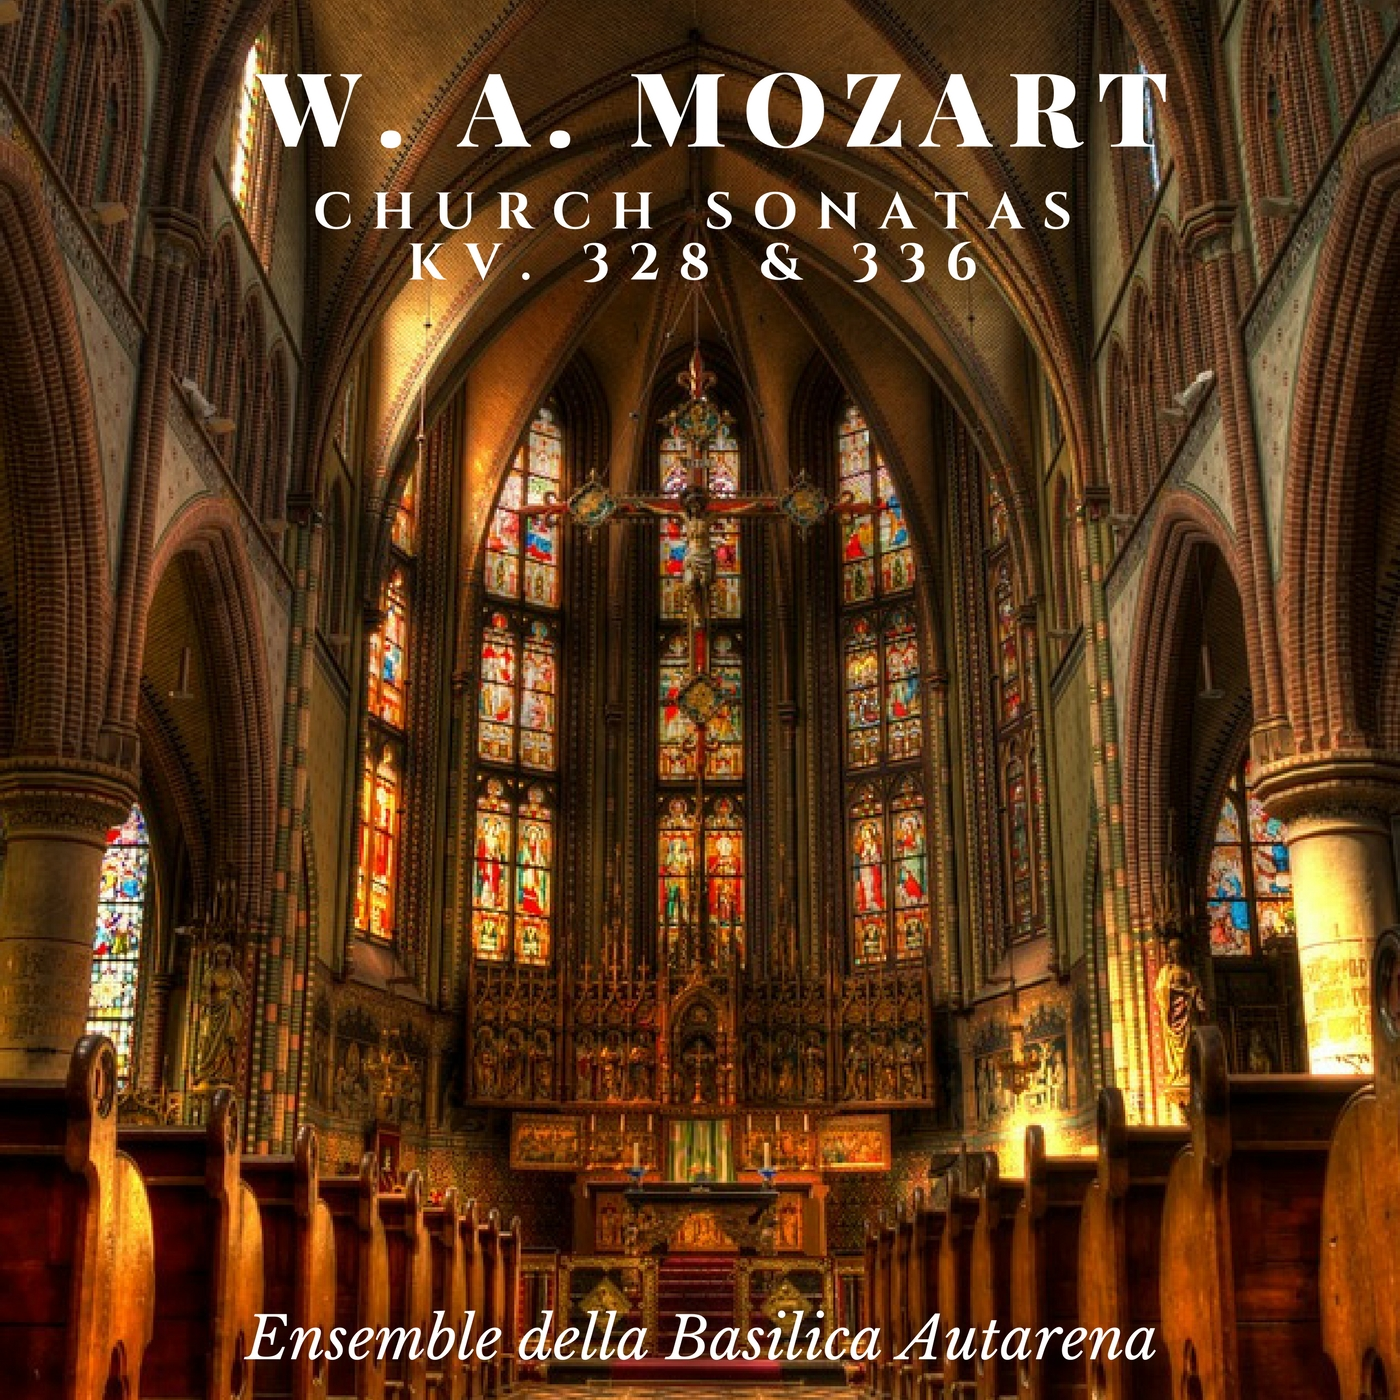 Mozart - Church Sonatas KV. 328 & 336